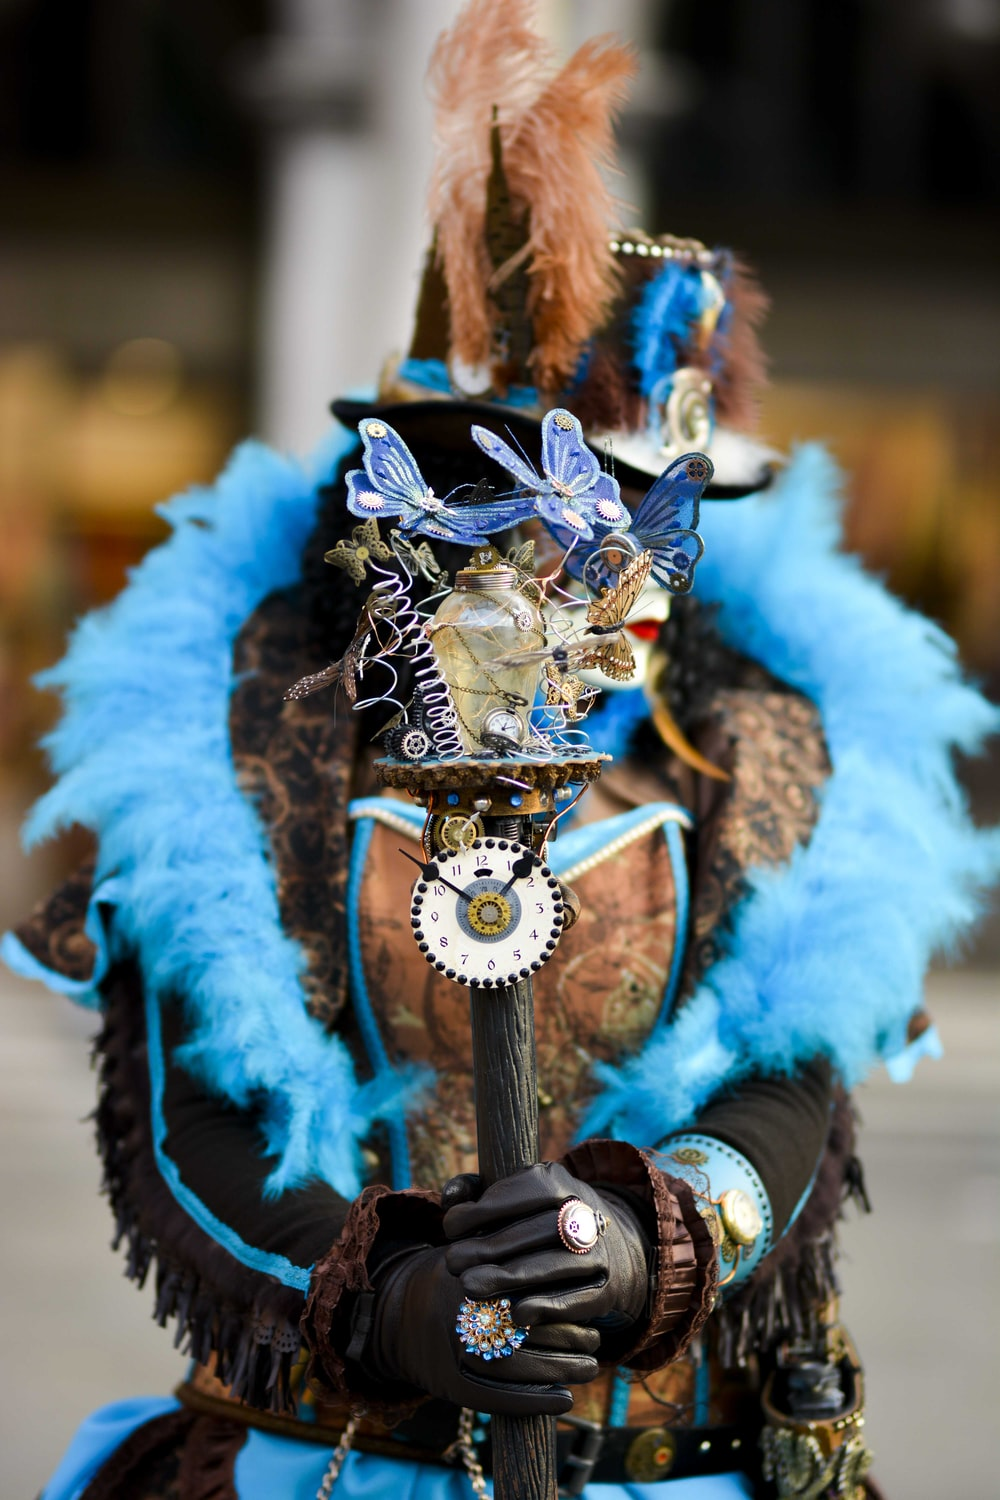 selective focus photography of person wearing costume